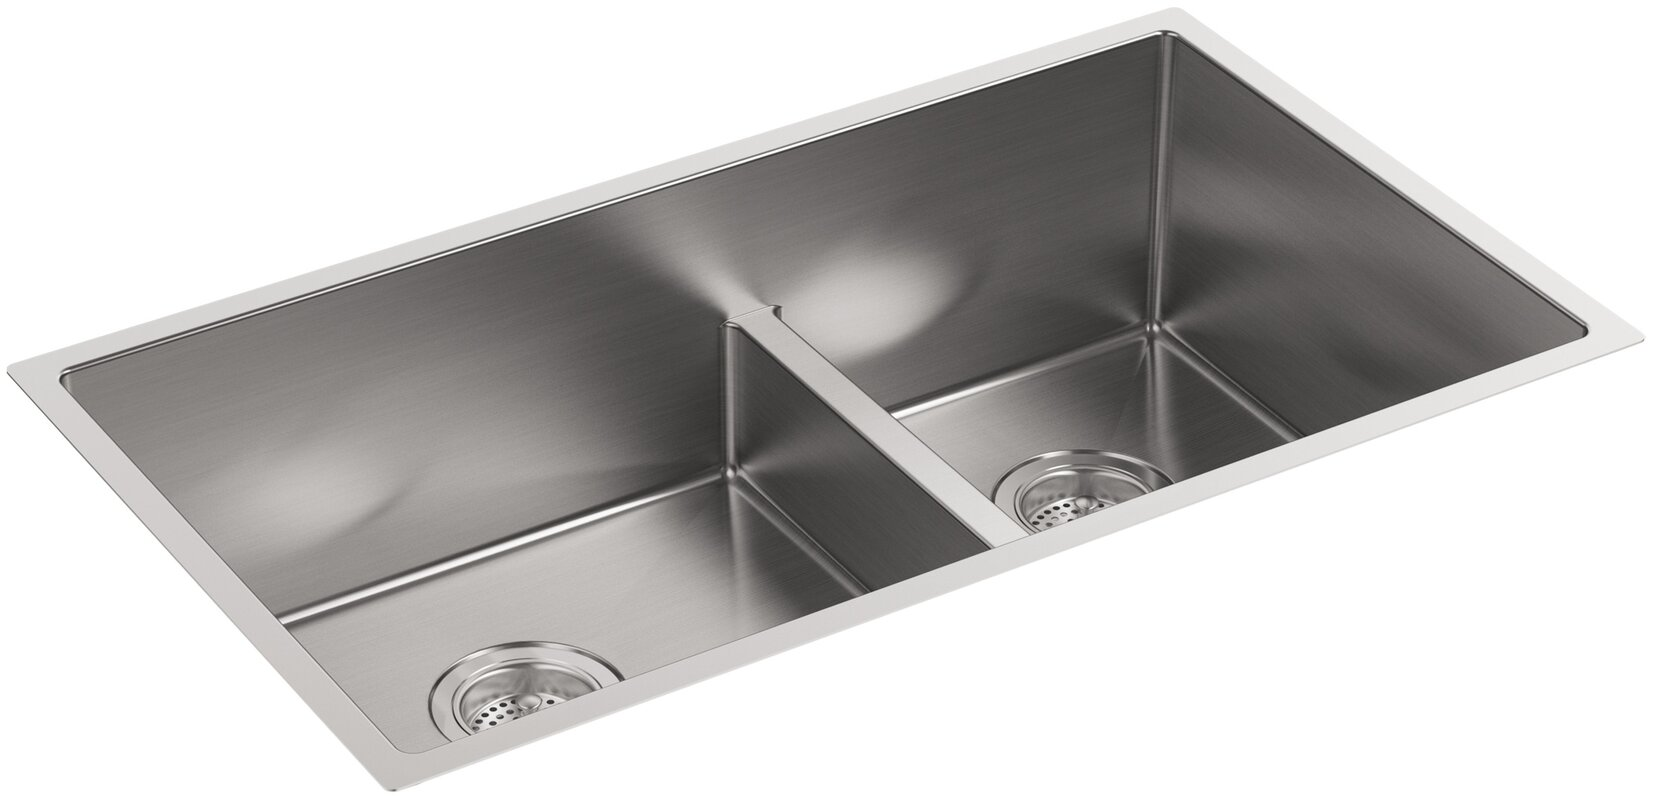 Kitchen Sink With Low Divider | RevolutionHR